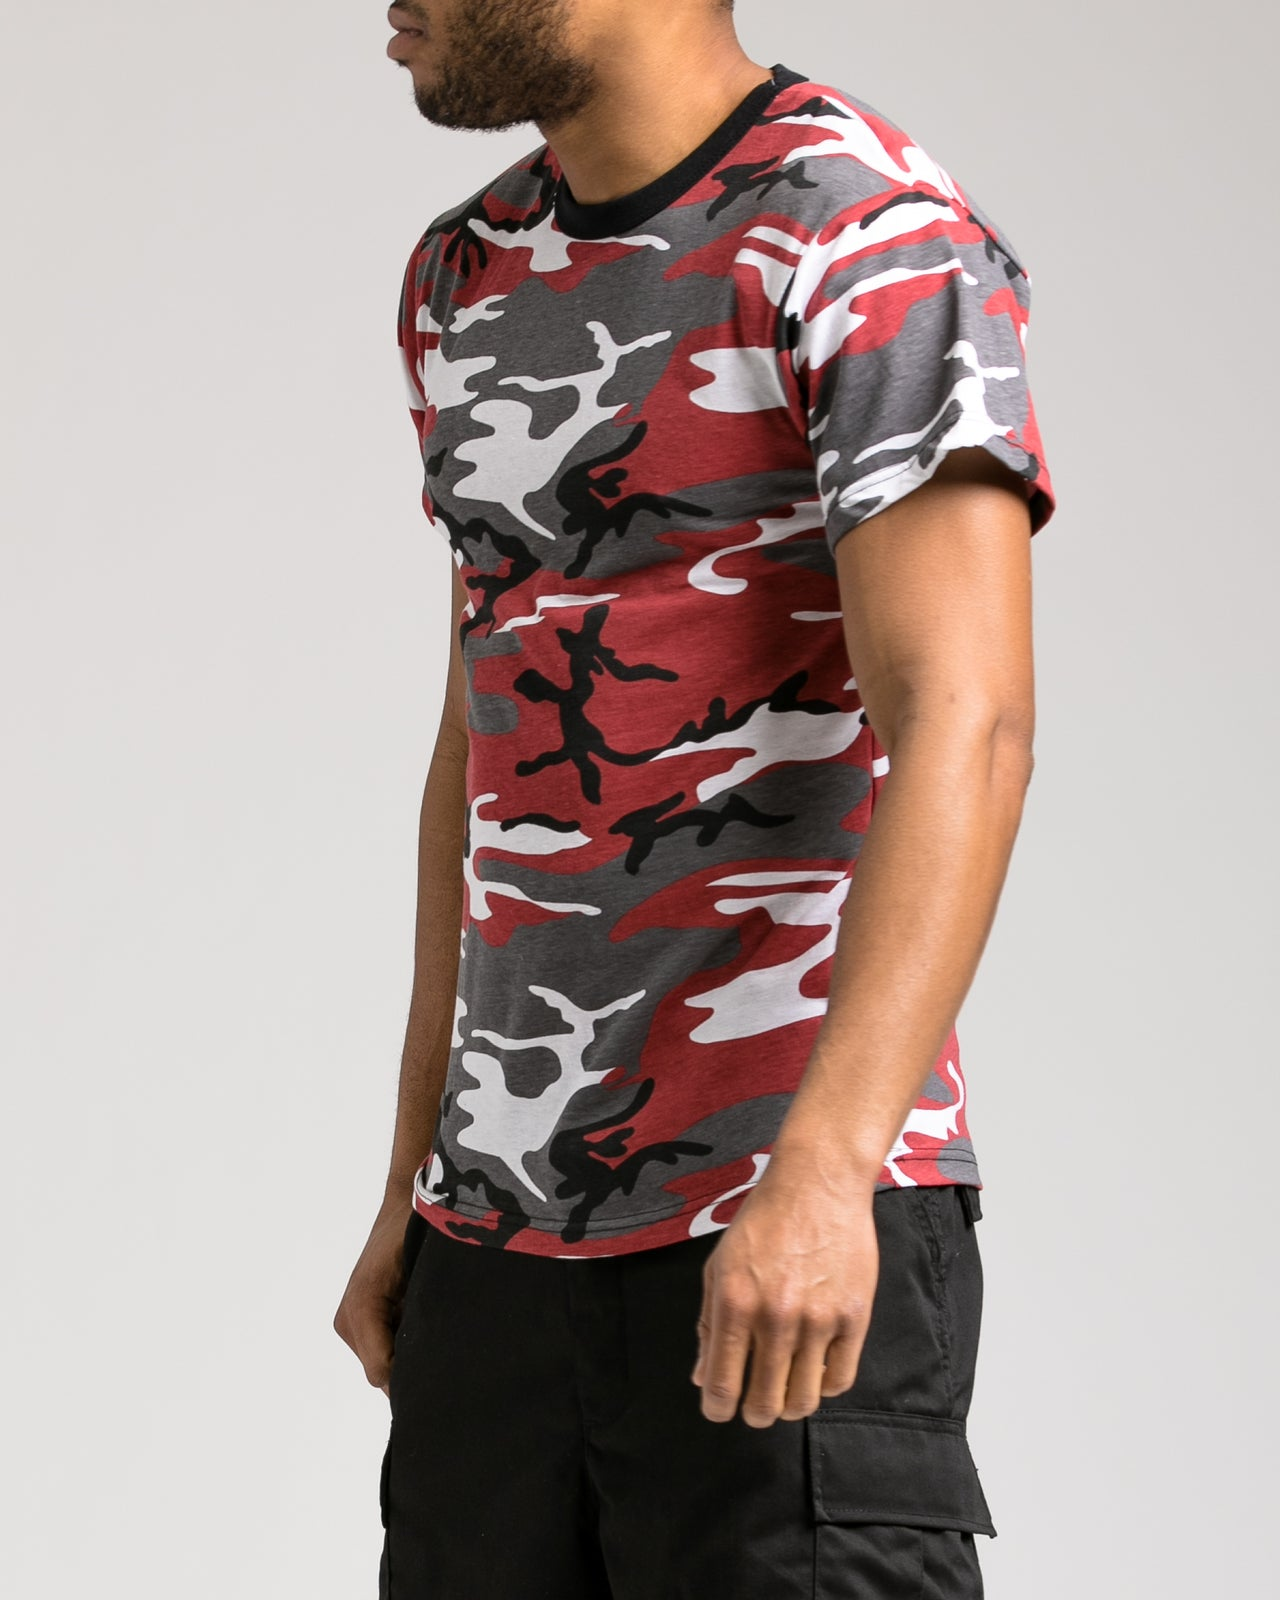 Camo Tee - Color: Red Camo | Red